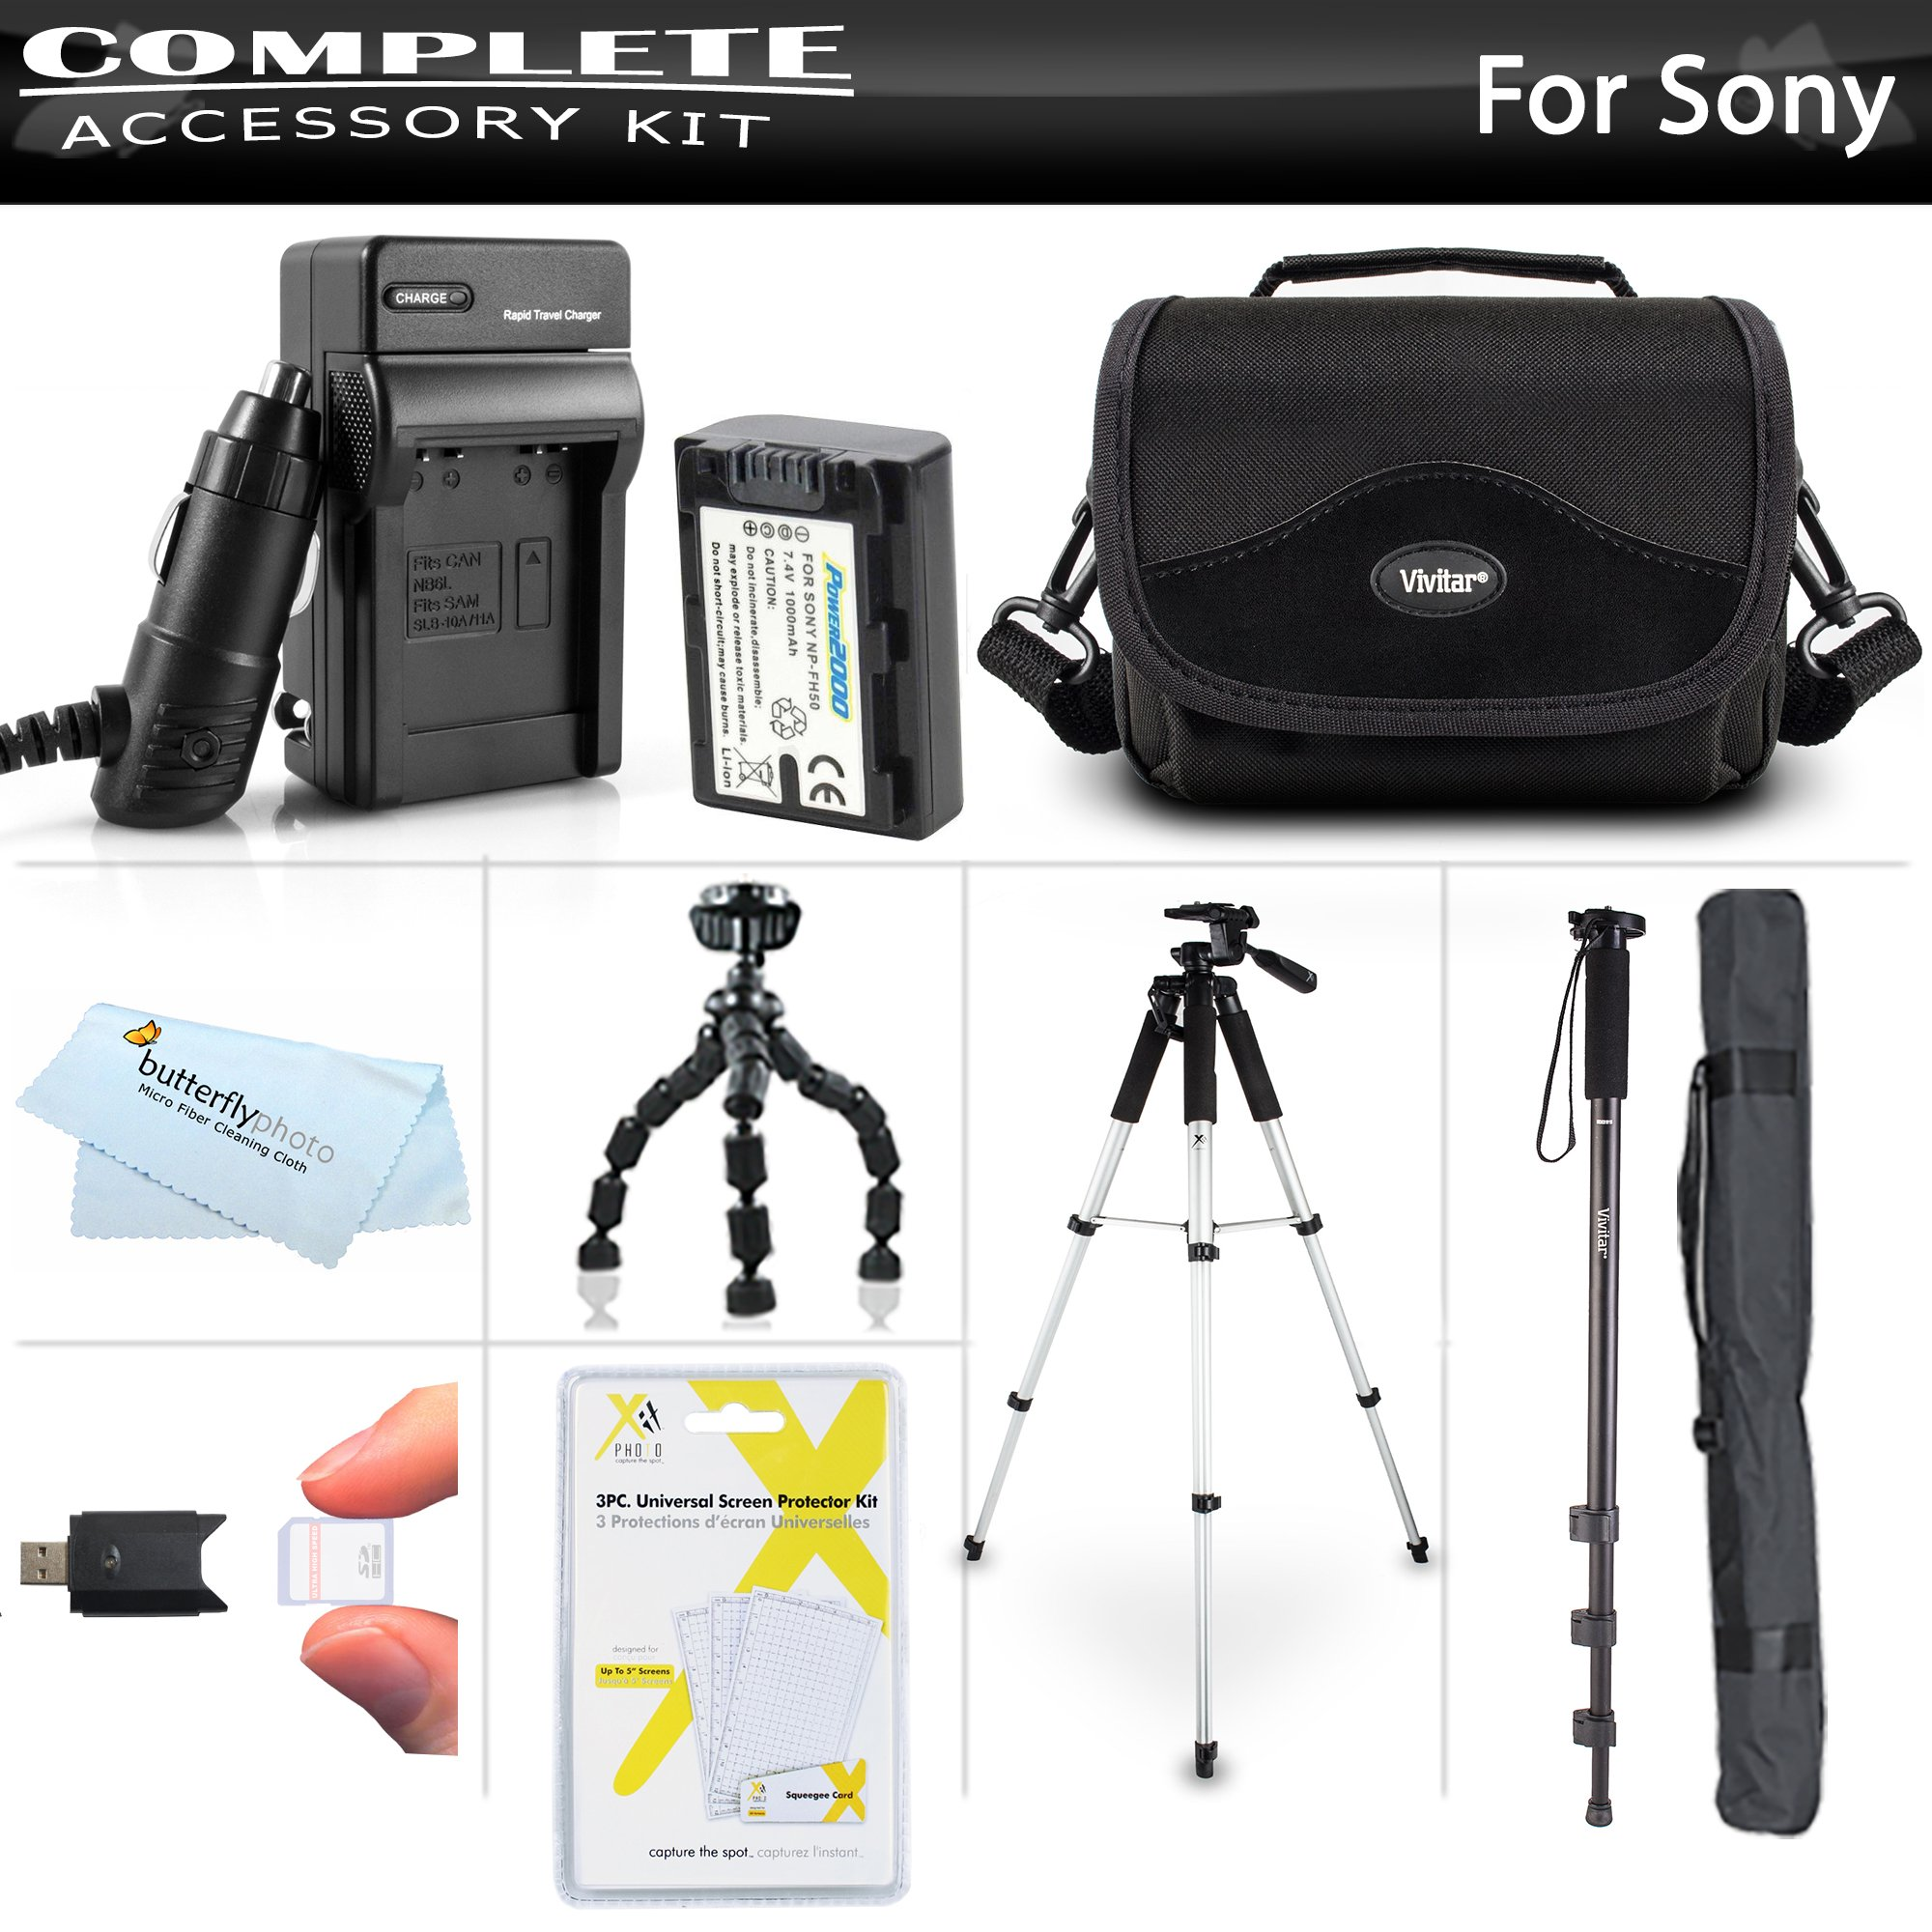 Advanced Accessory Kit For Sony Cyber-Shot DSC-HX100V, DSC-HX200V Digital Camera Includes Extended (1000mAh) Replacement NP-FH50 Battery + Ac/Dc Travel Charger + Deluxe Case + 57'' Pro Tripod + 67'' Monopod + Screen Protectors + More